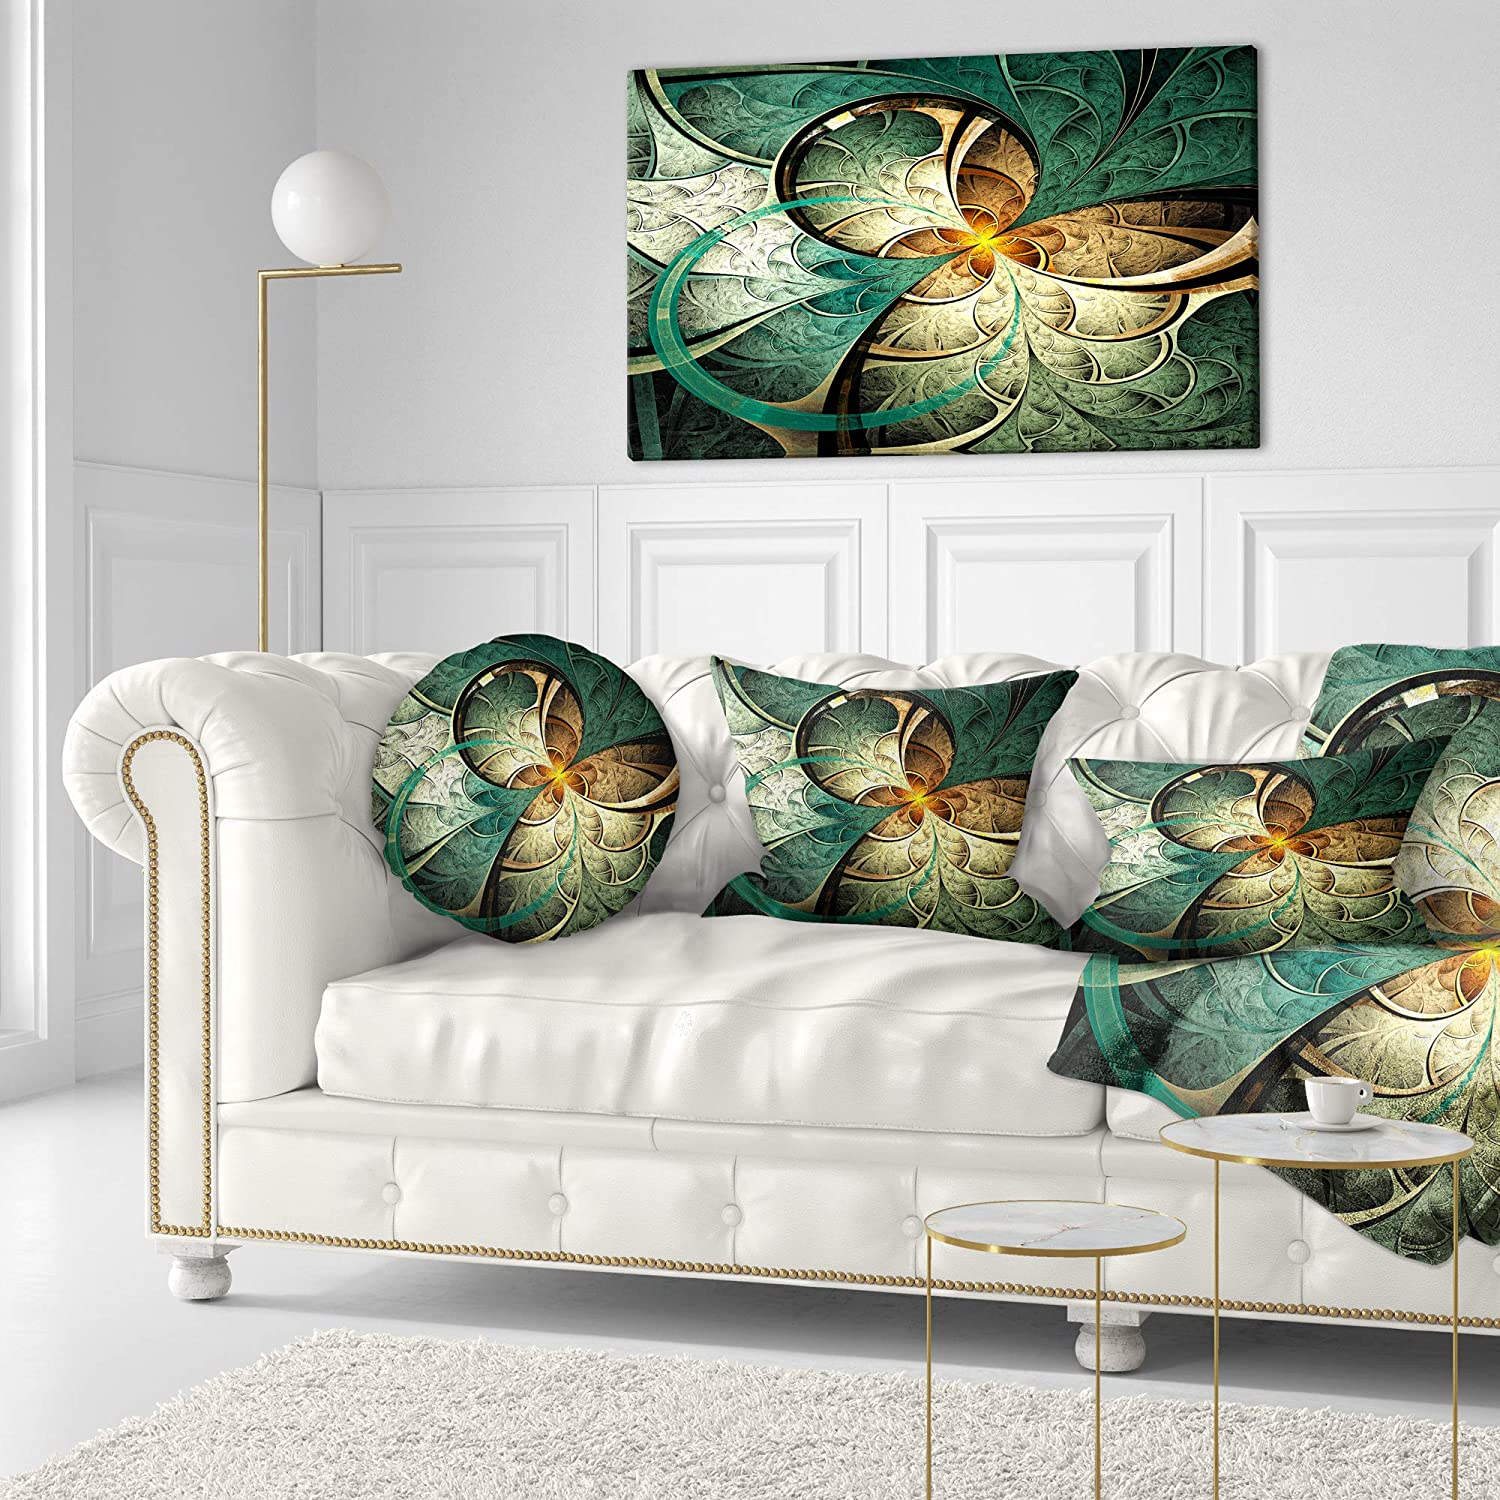 Sofa Throw Pillow 16 Inches Designart CU16487-16-16-C Dark Yellow Green Fractal Flower Abstract Round Cushion Cover for Living Room